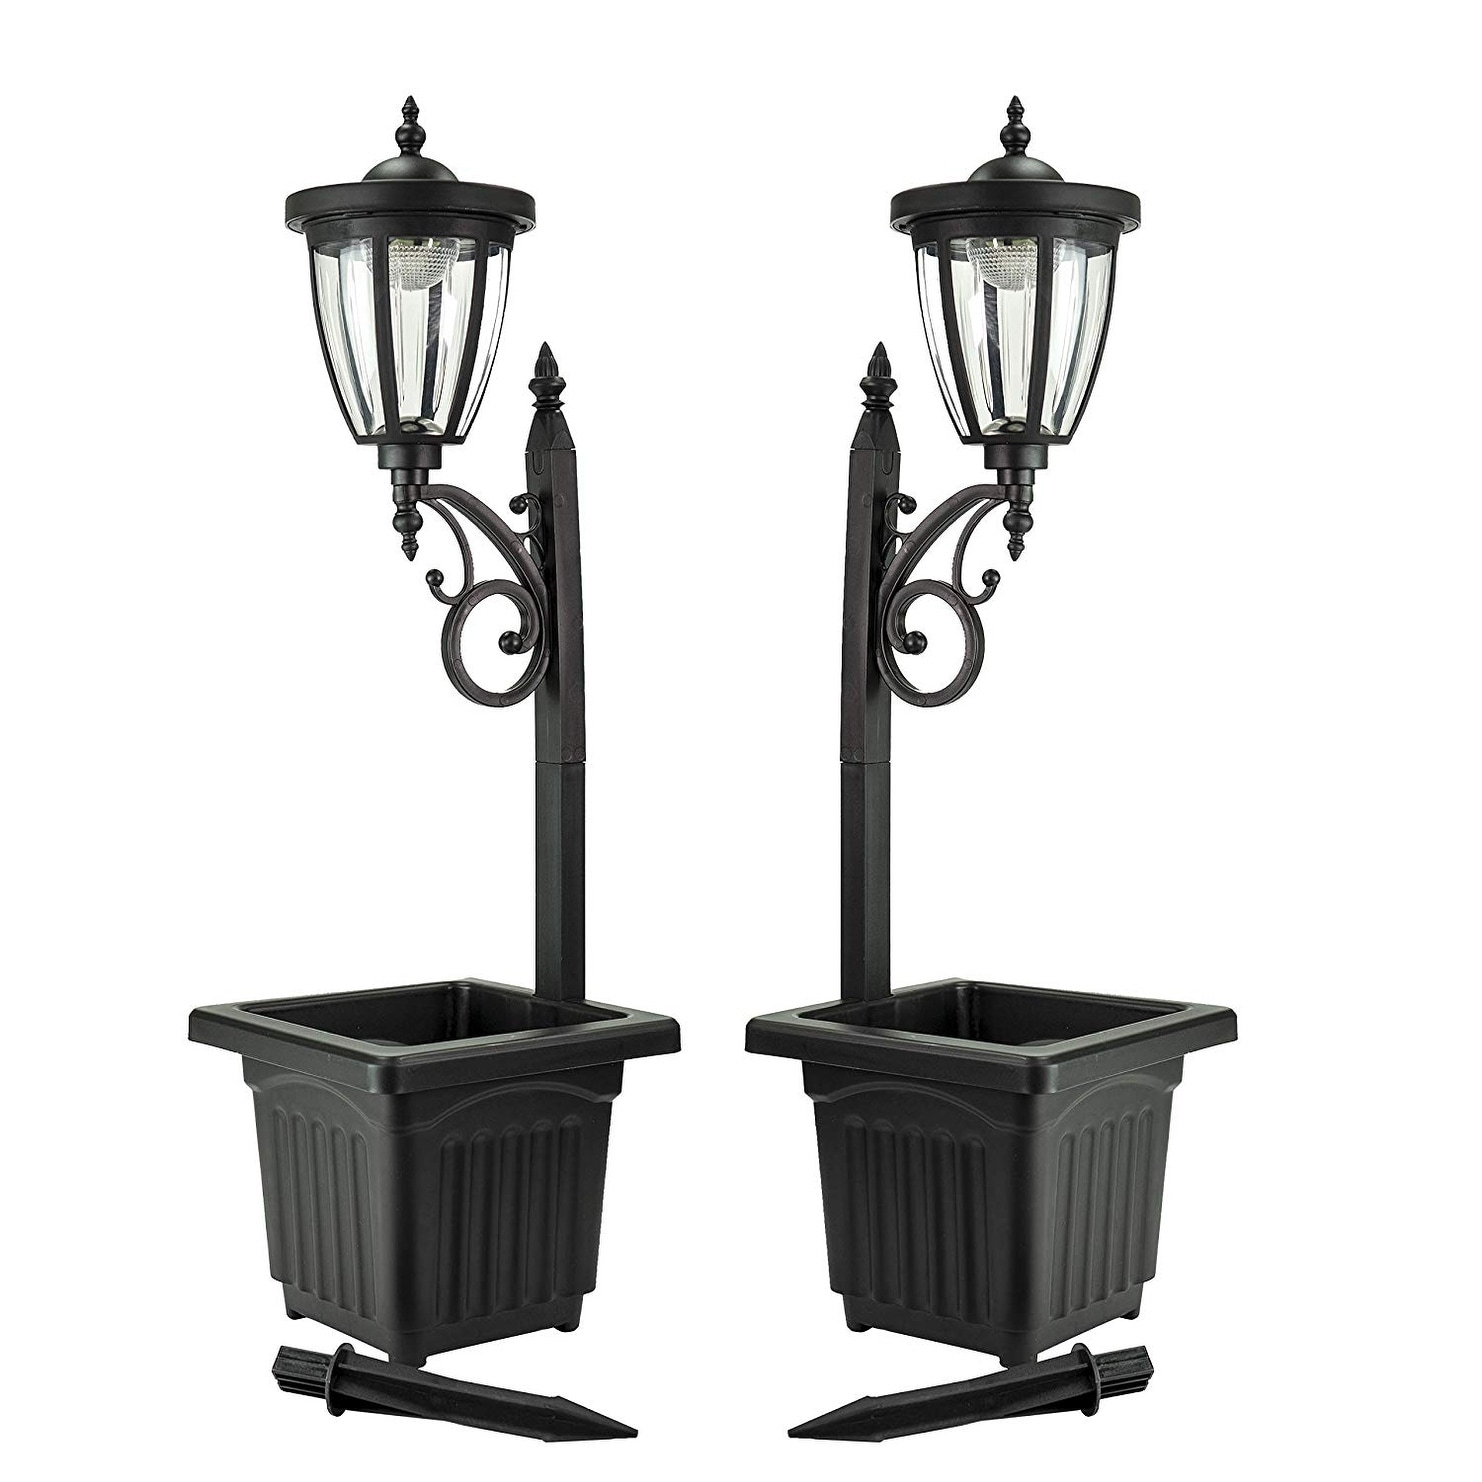 Solar Lamp Post Sun Ray Kambria Multi Function Solar Lamp Post And Planter Set Of 2